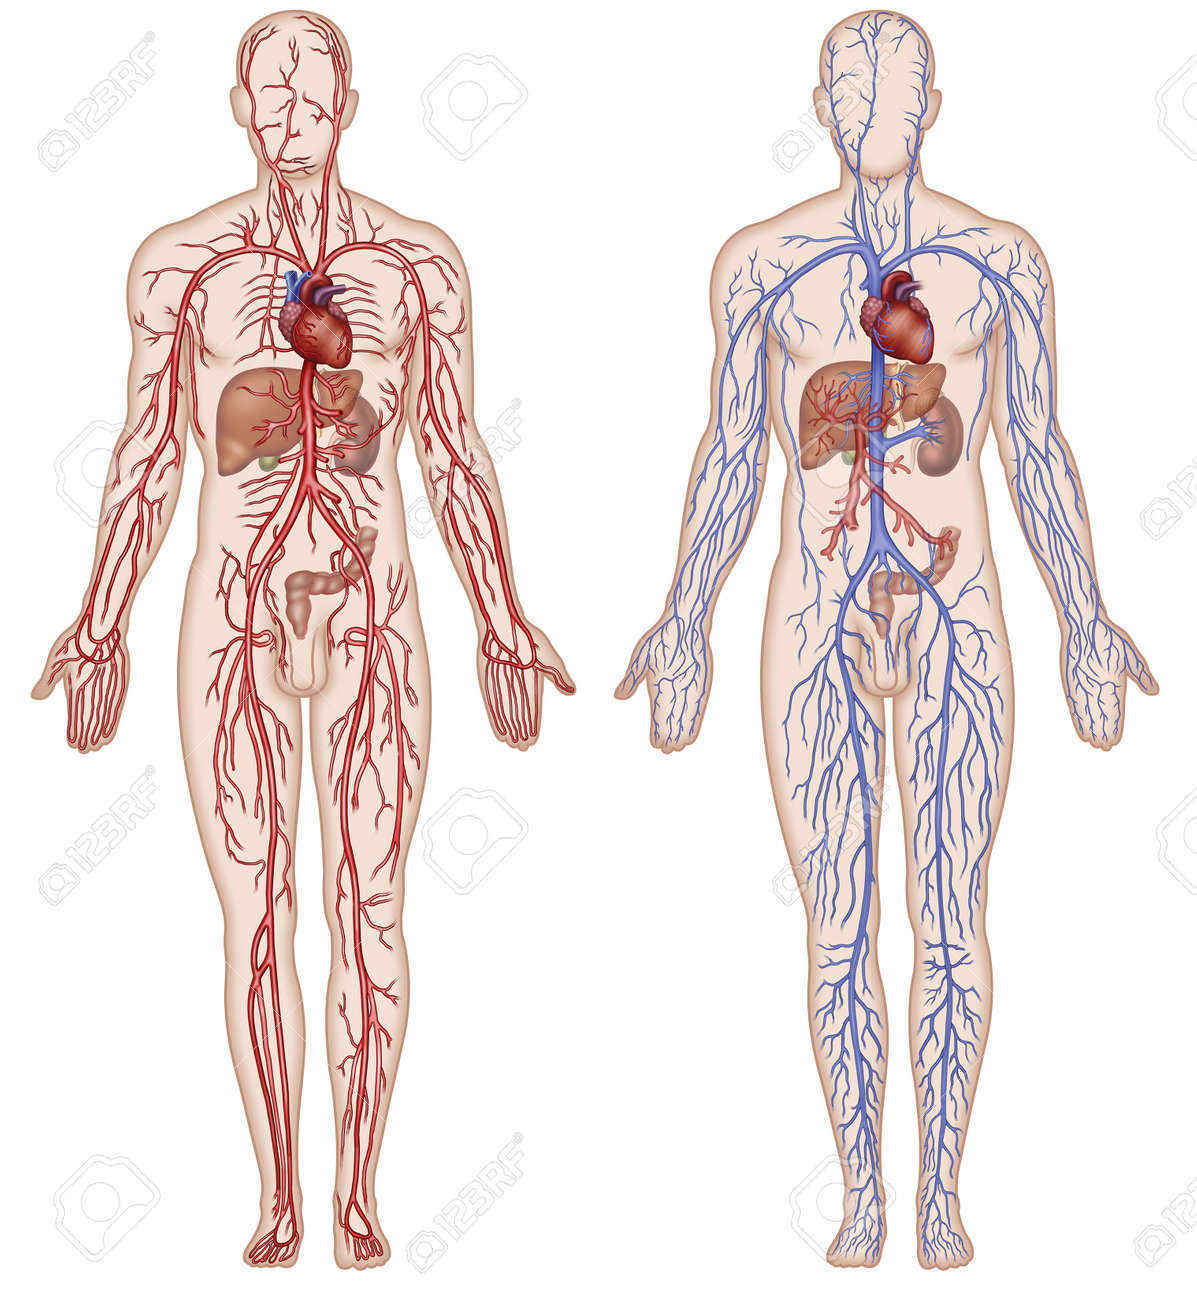 hight resolution of schematic illustration of the figure which shows the major arteries and veins of the human body